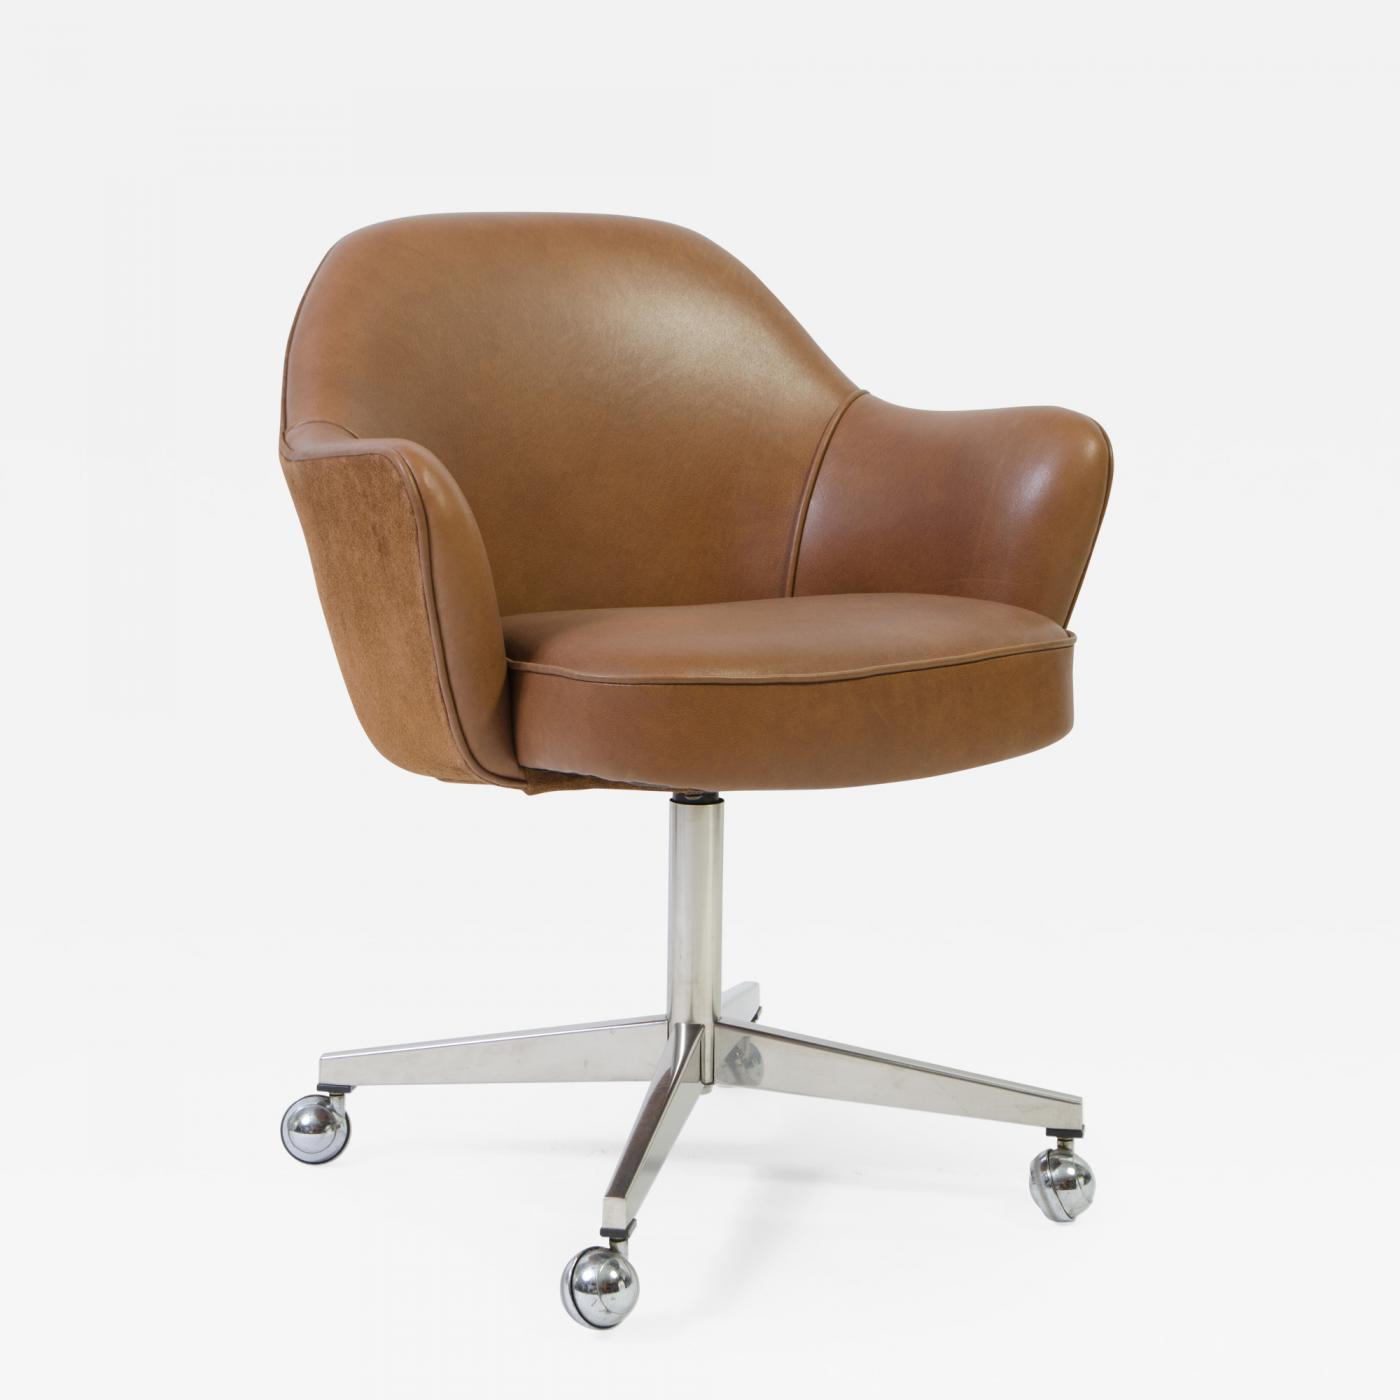 Eero Saarinen - Knoll Desk Chair in Contrasting Saddle Leather/Suede